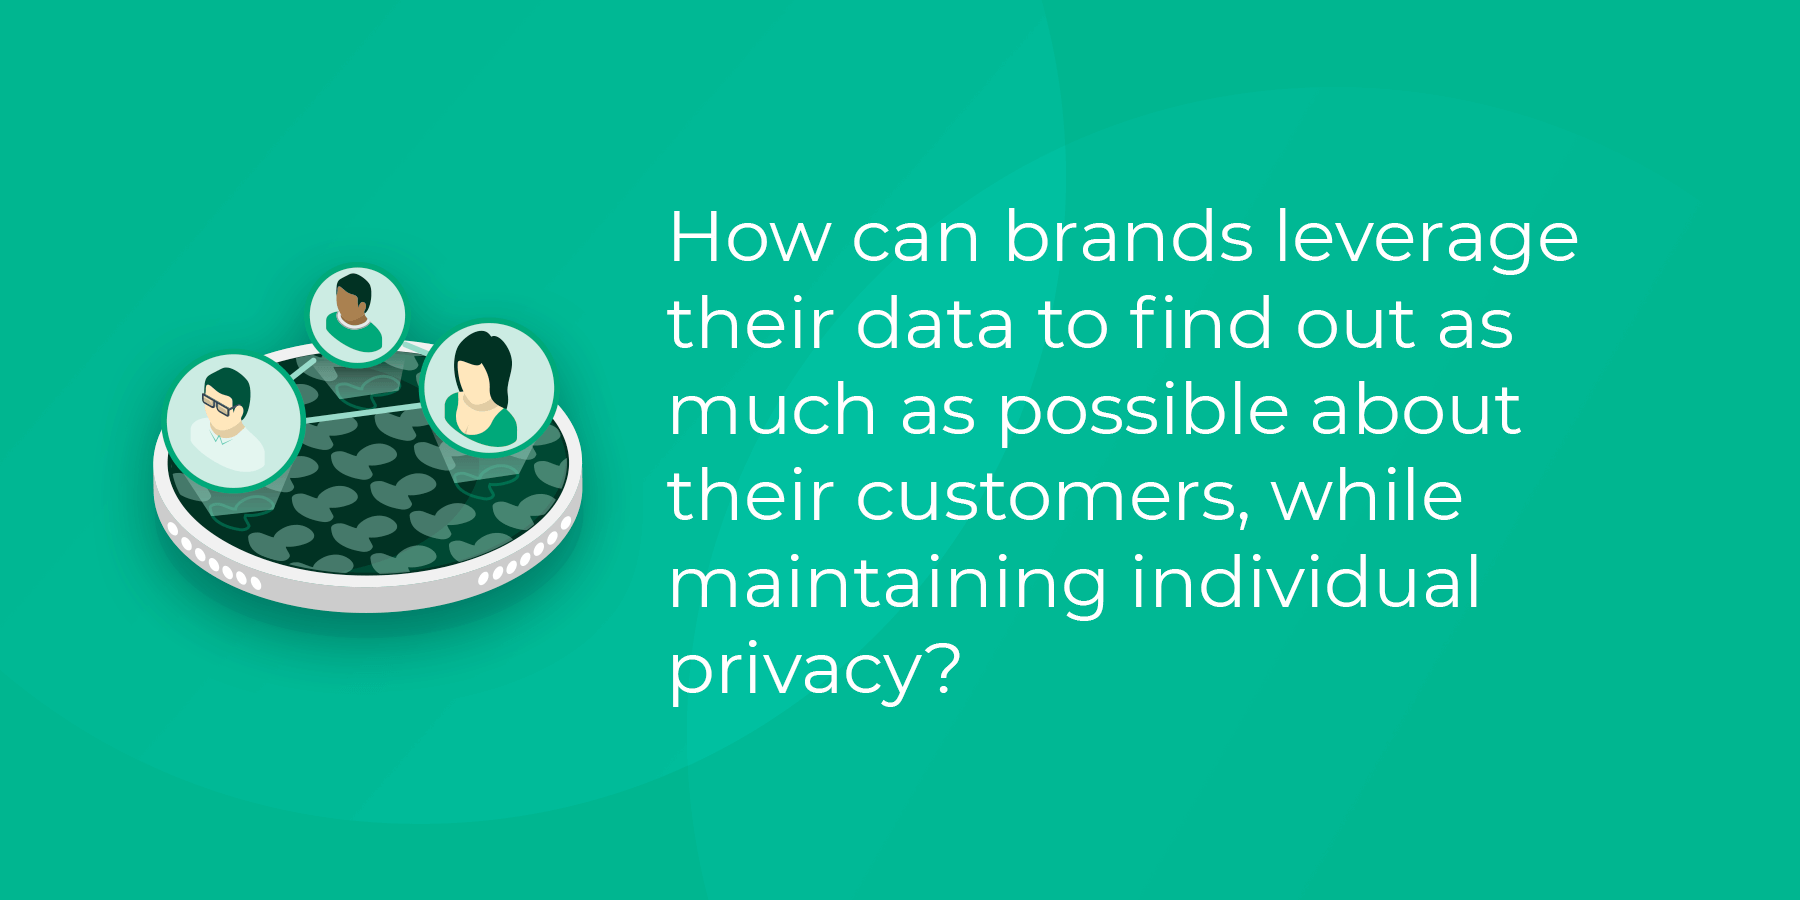 How can brands leverage their data while maintaining individual privacy?